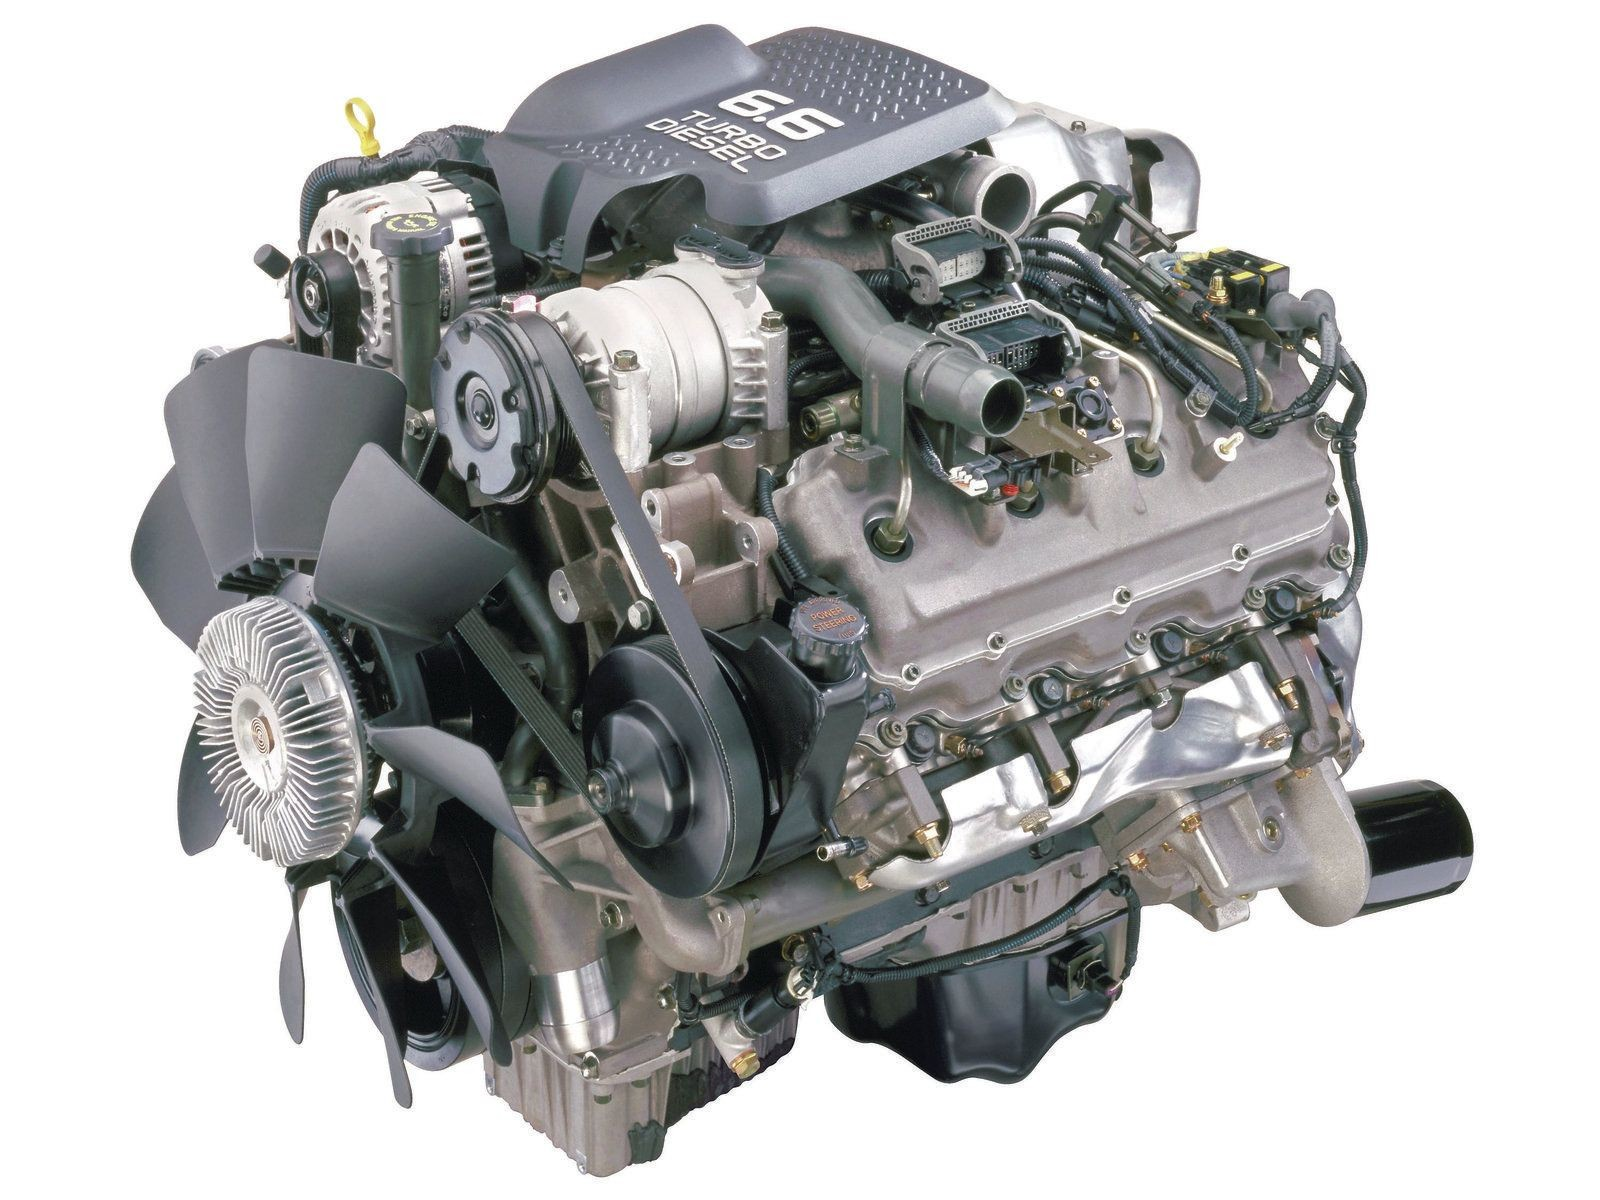 hight resolution of lb7 duramax engine diagram history of the duramax sel engine rh enginediagram net 2004 chevy duramax